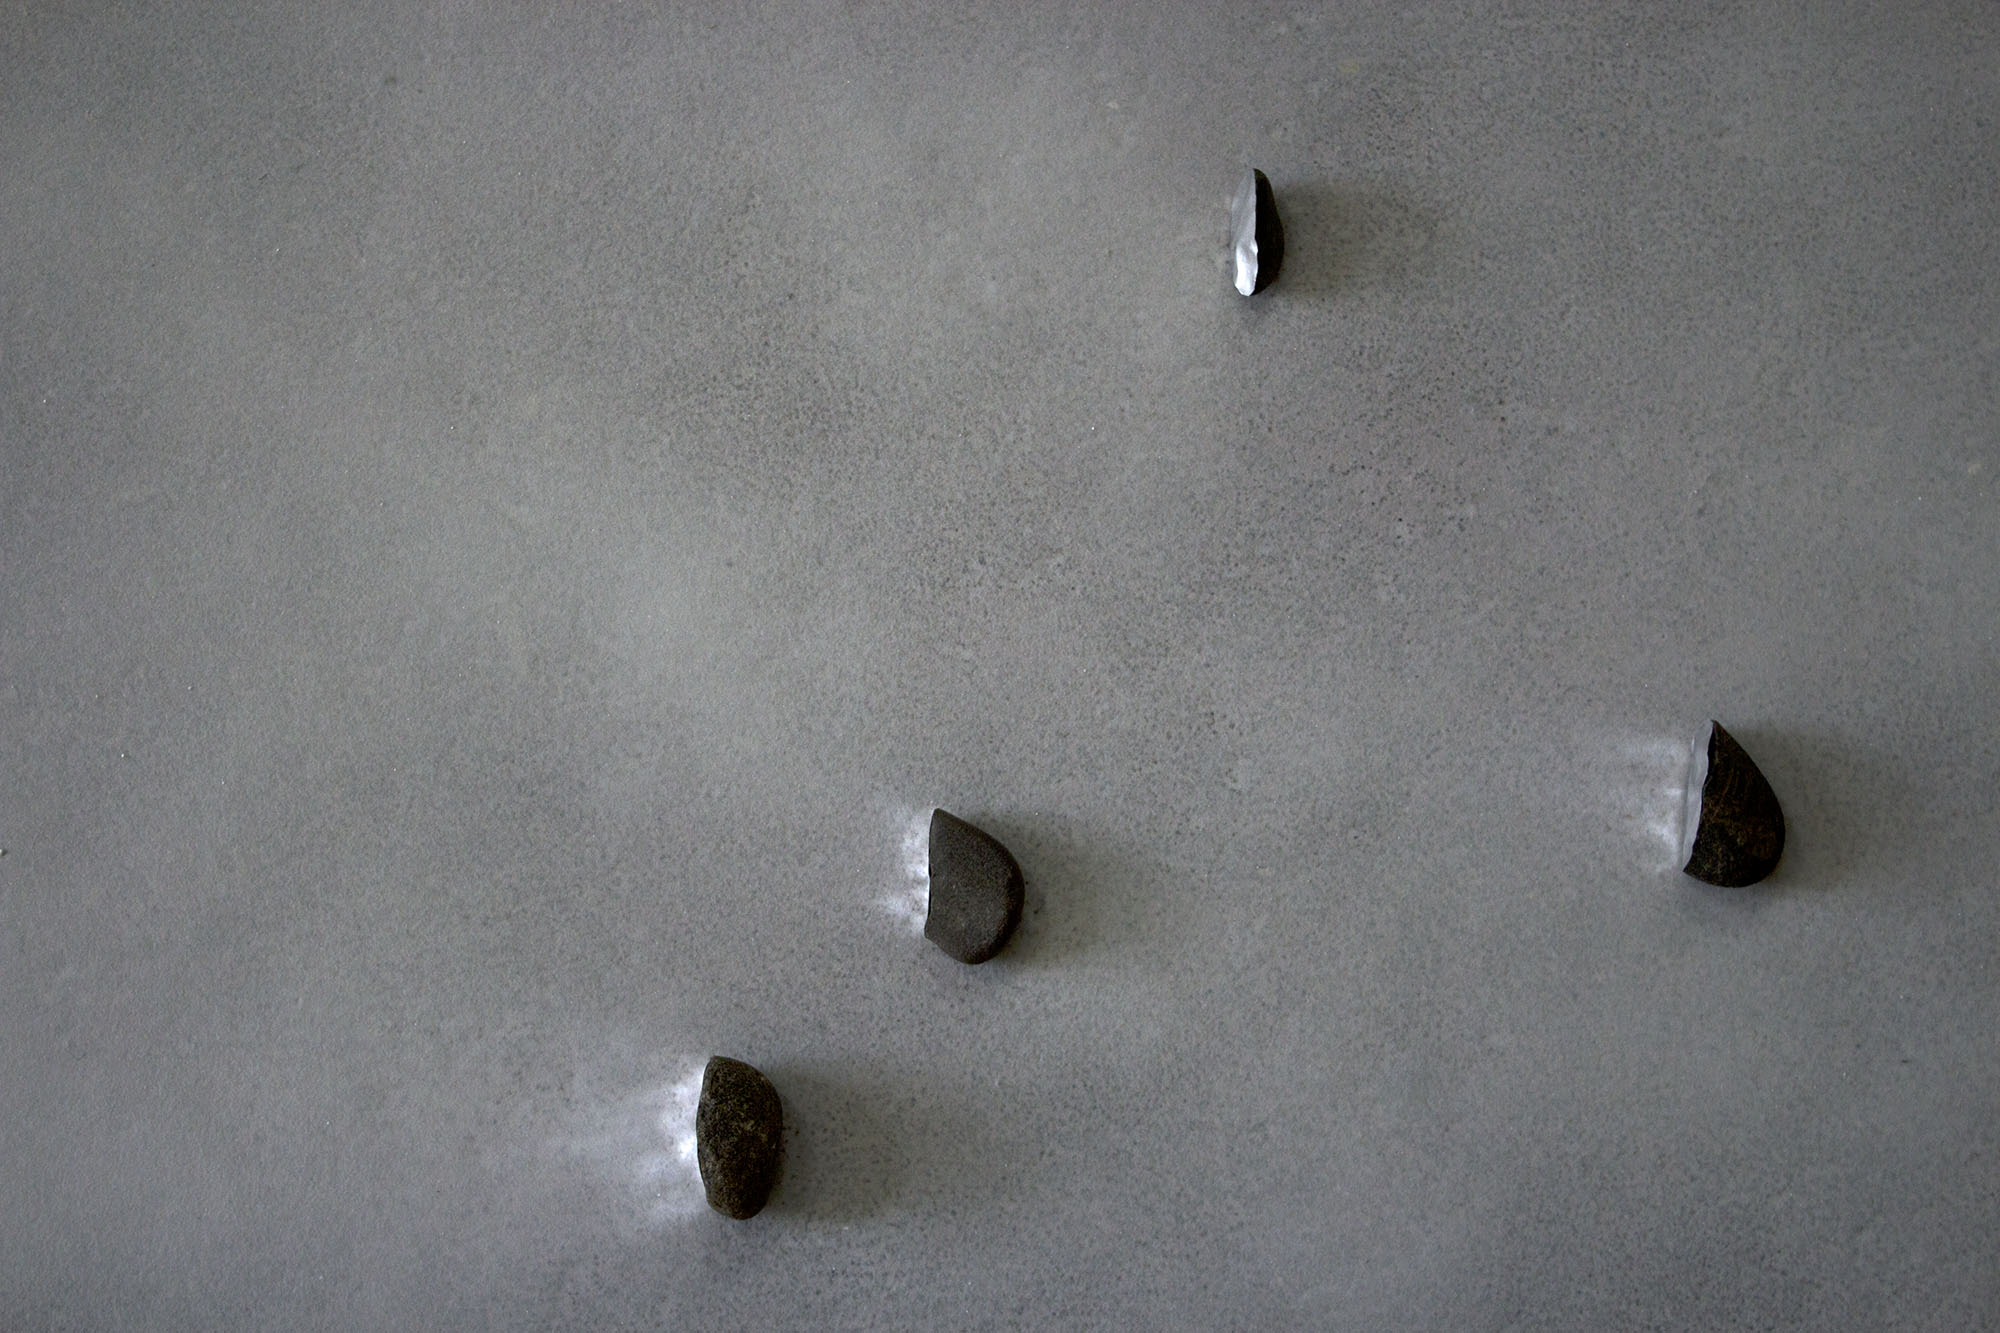 faced  , 2013 (detail) recovered stones, foil tape, glass microspheres, natural light dimensions variable